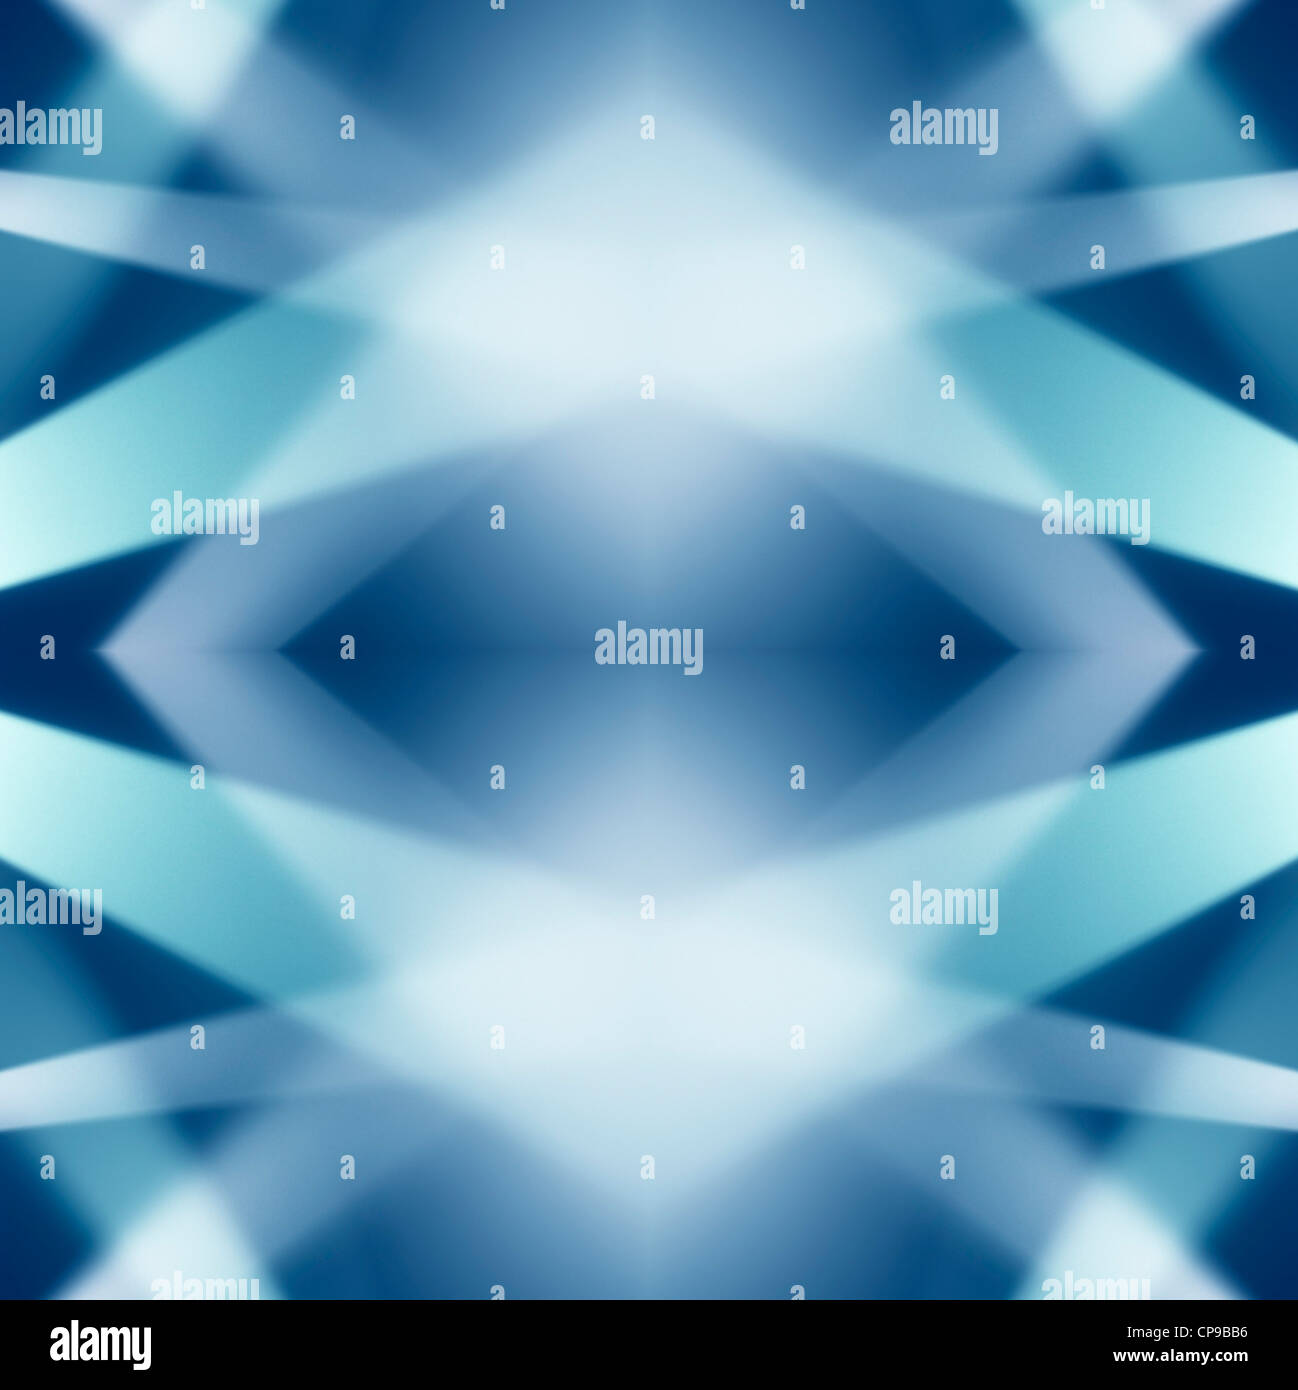 Abstract Reflected Light Ray Background - Stock Image